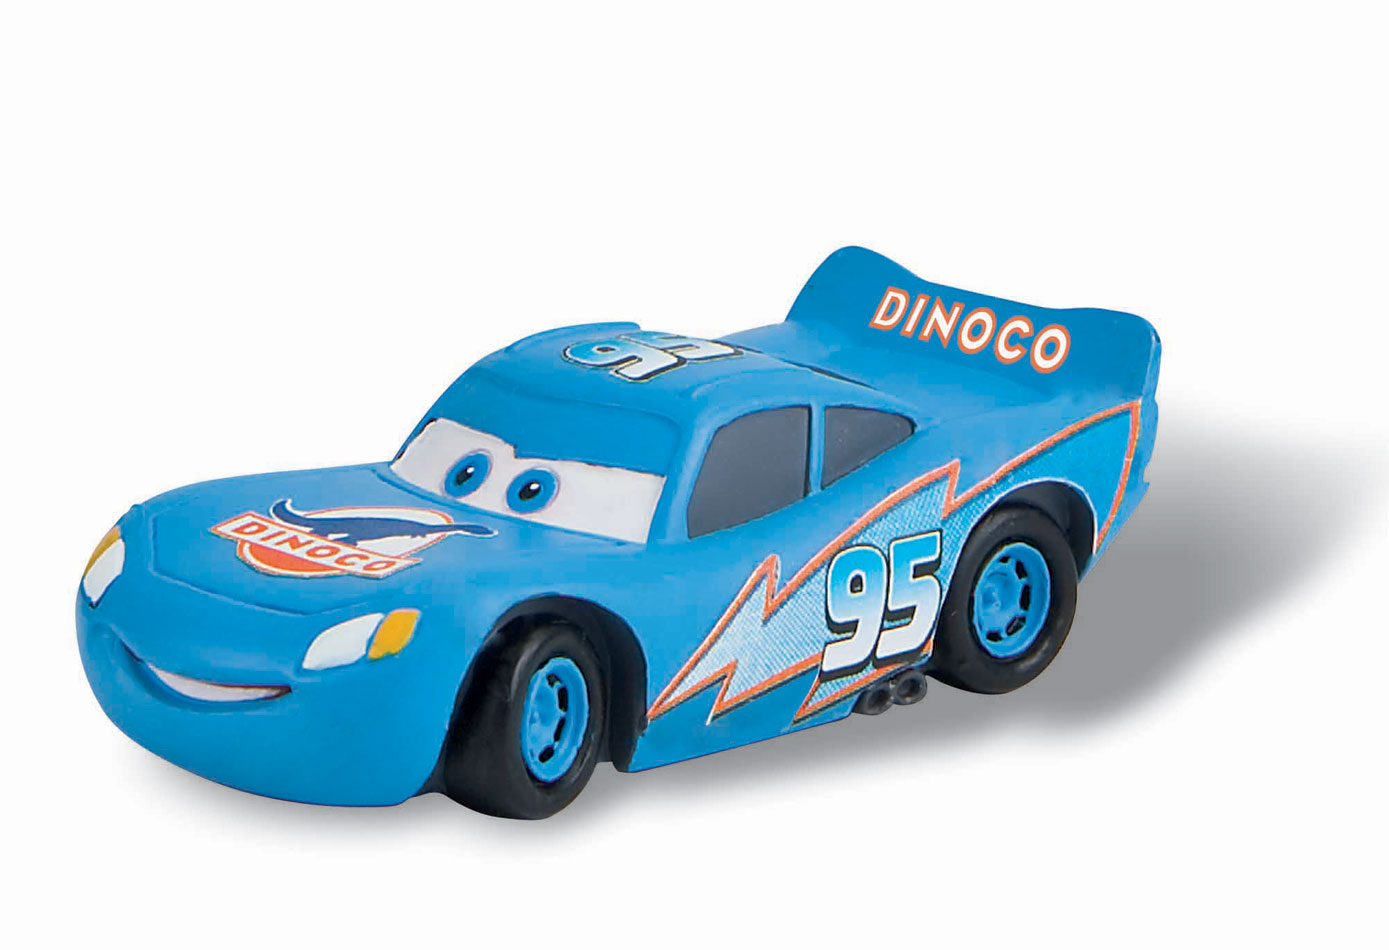 cars flash mcqueen 39 dinoco 39 figurine 7 cm bullyland bula12688. Black Bedroom Furniture Sets. Home Design Ideas